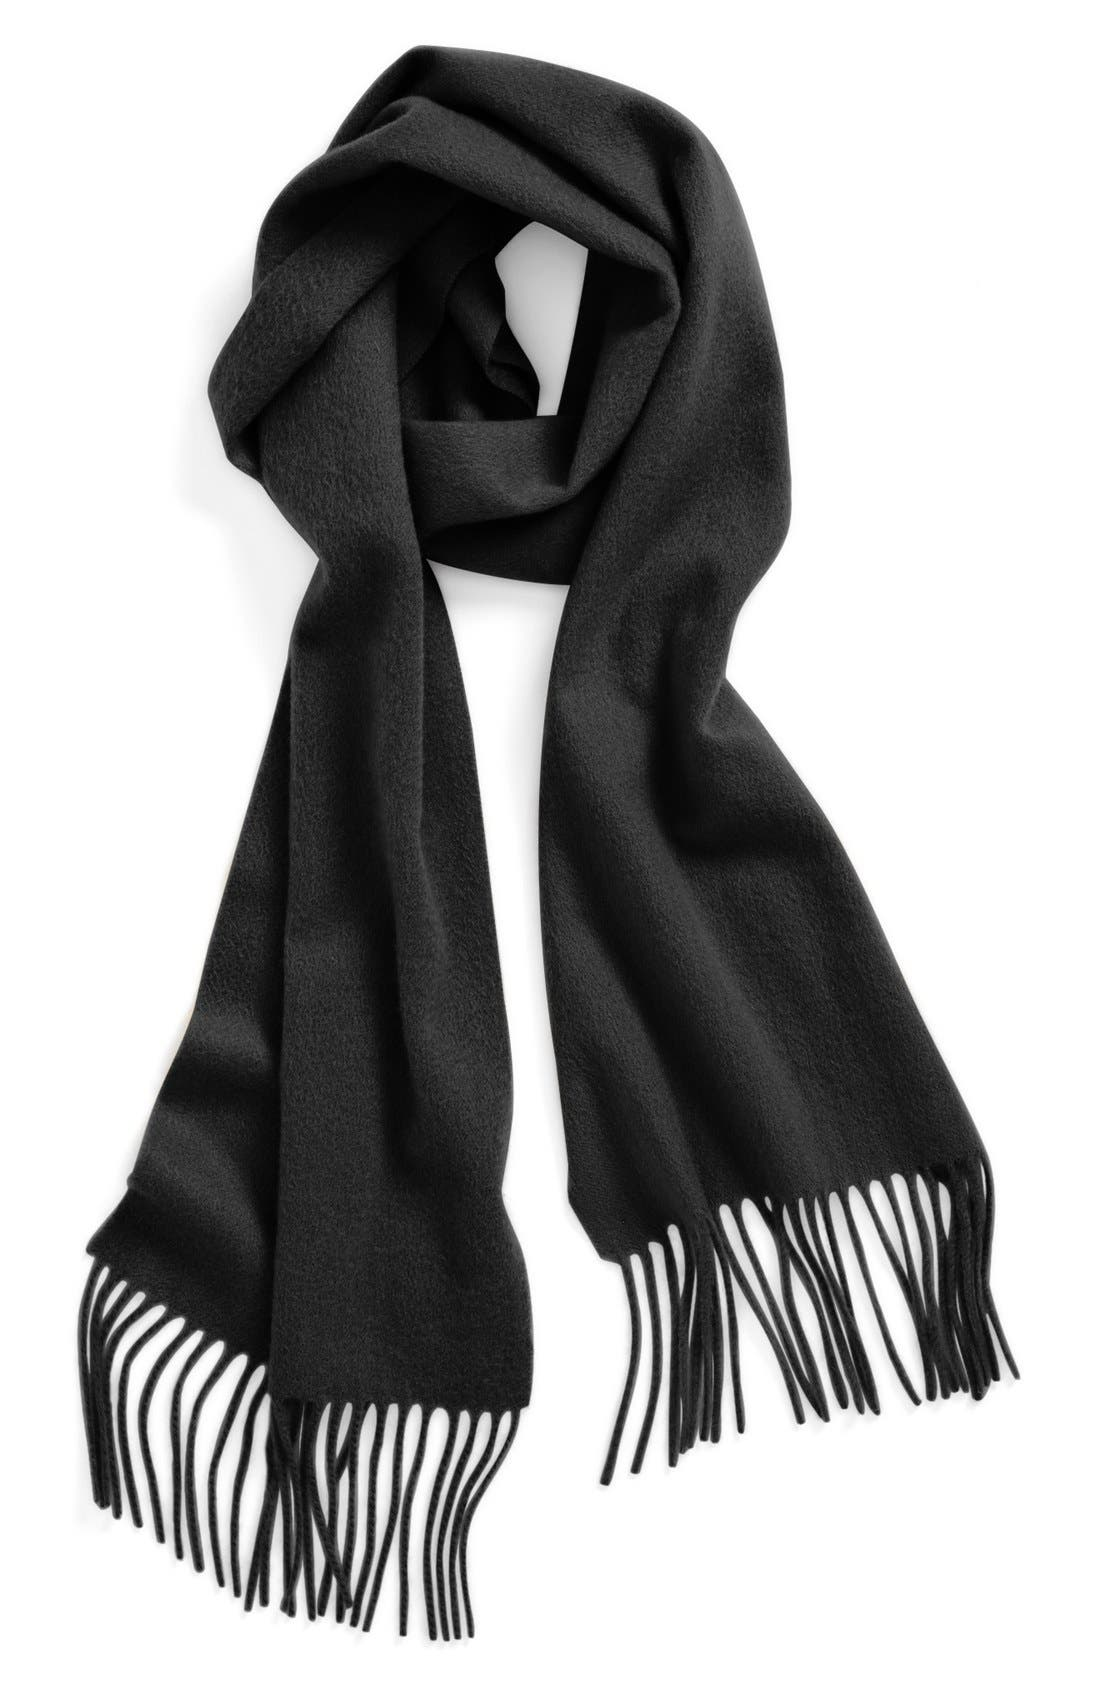 NORDSTROM, Solid Woven Cashmere Scarf, Main thumbnail 1, color, 001